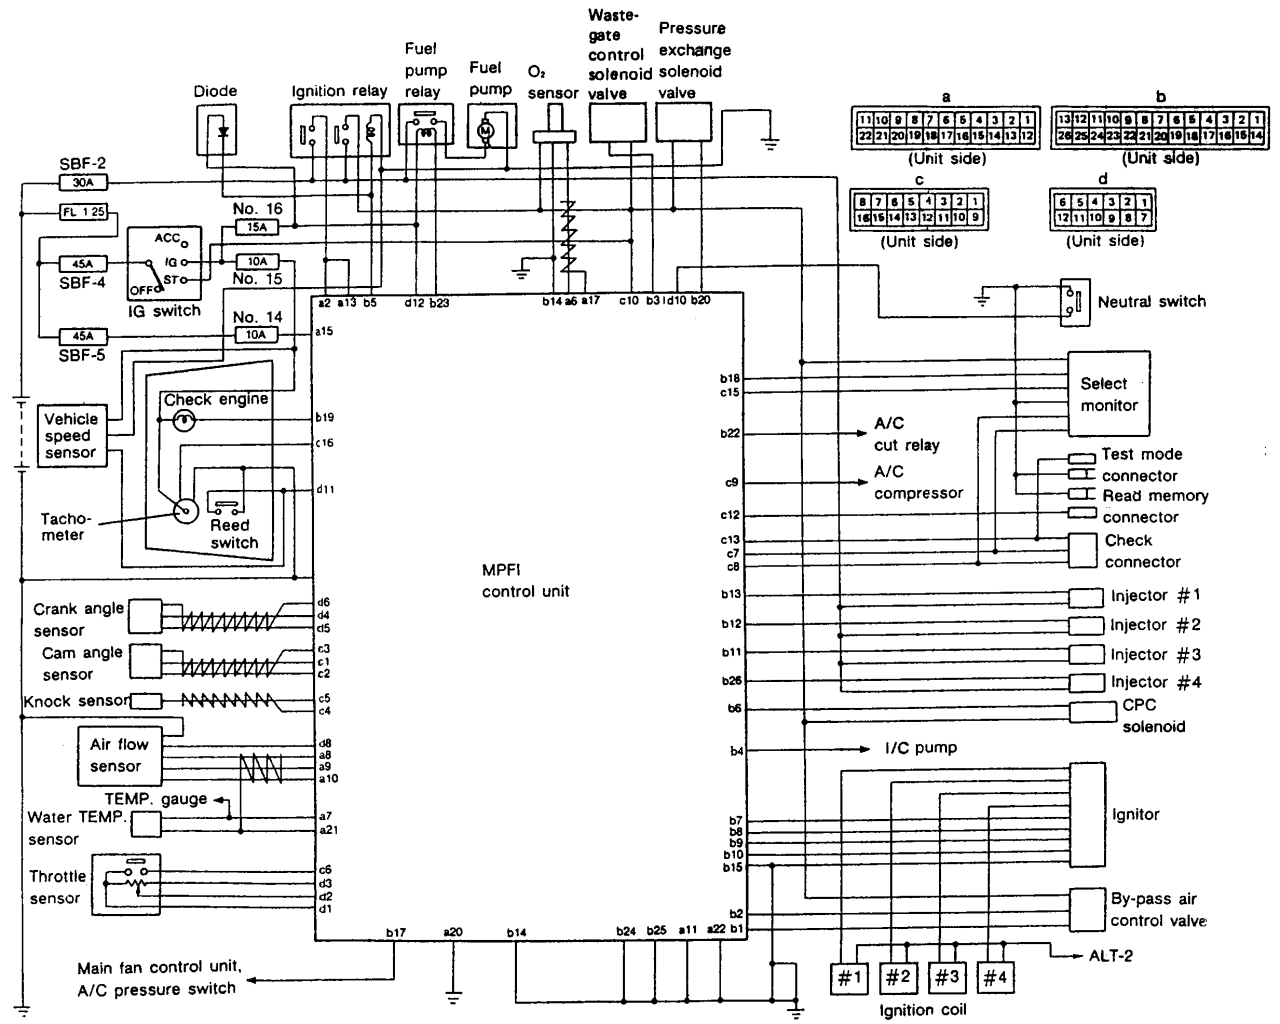 Wiring Diagram Subaru Impreza Wrx Sti Free Download Wiring Diagram